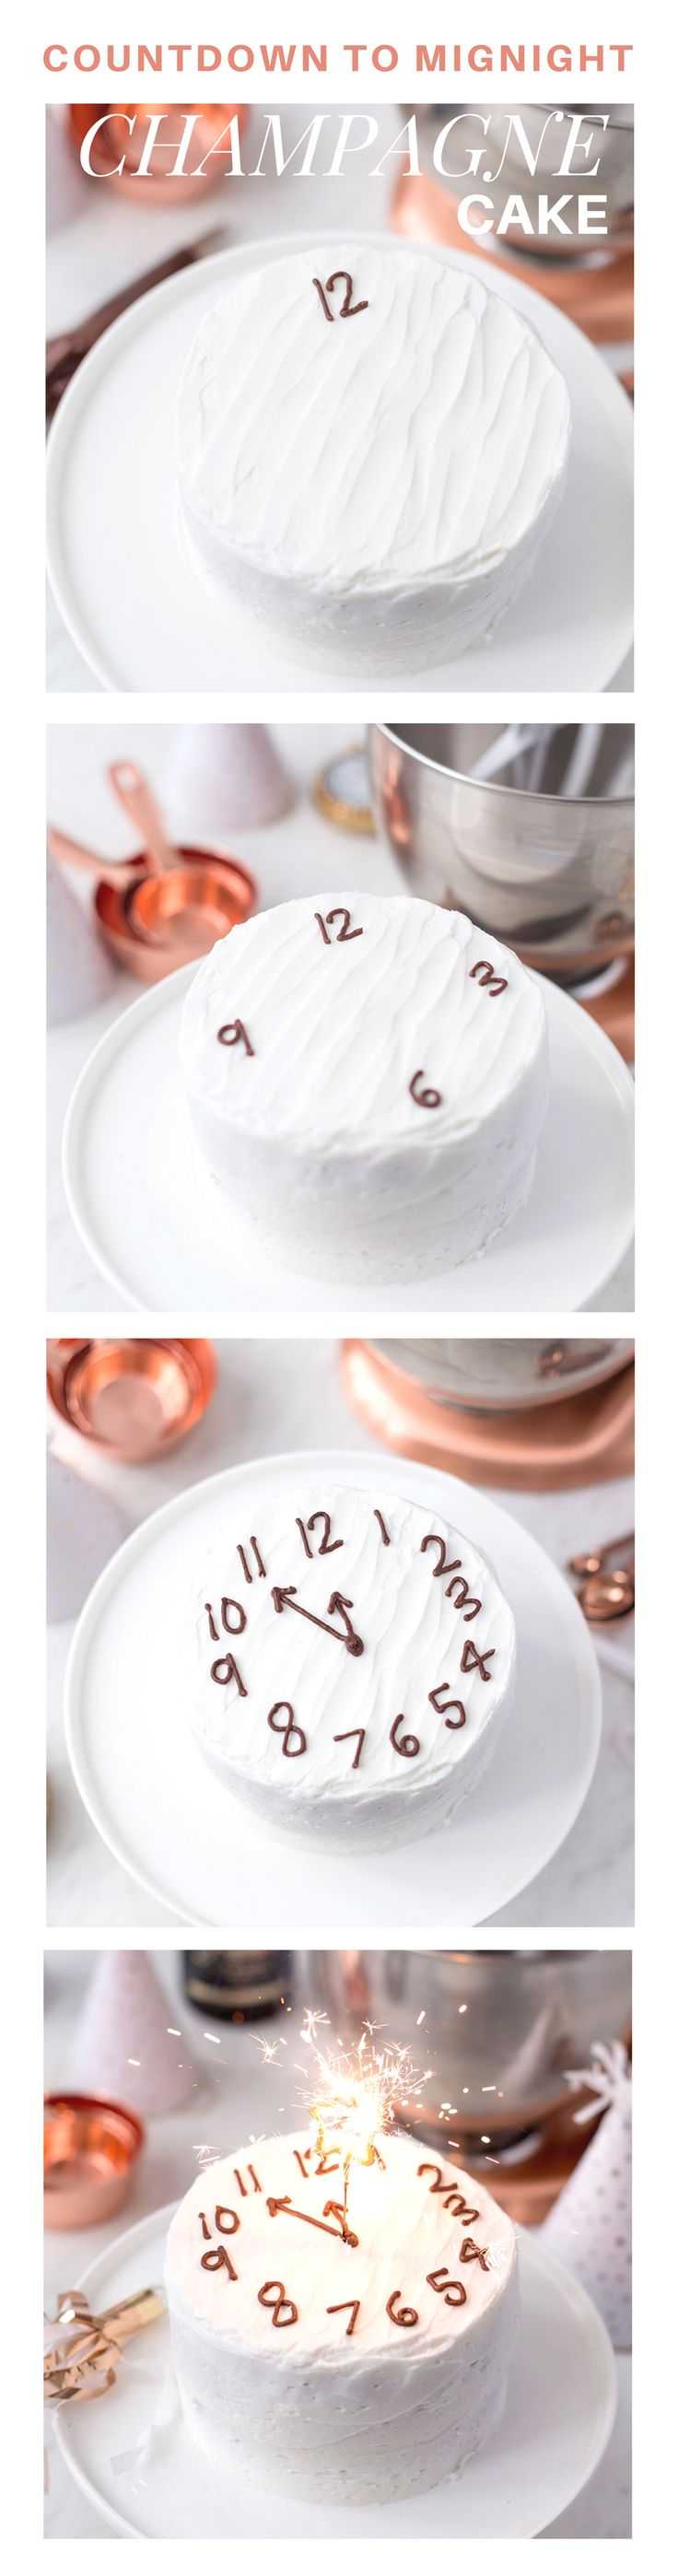 Countdown to Midnight Champagne Cake for the perfect New Year's Eve Dessert!